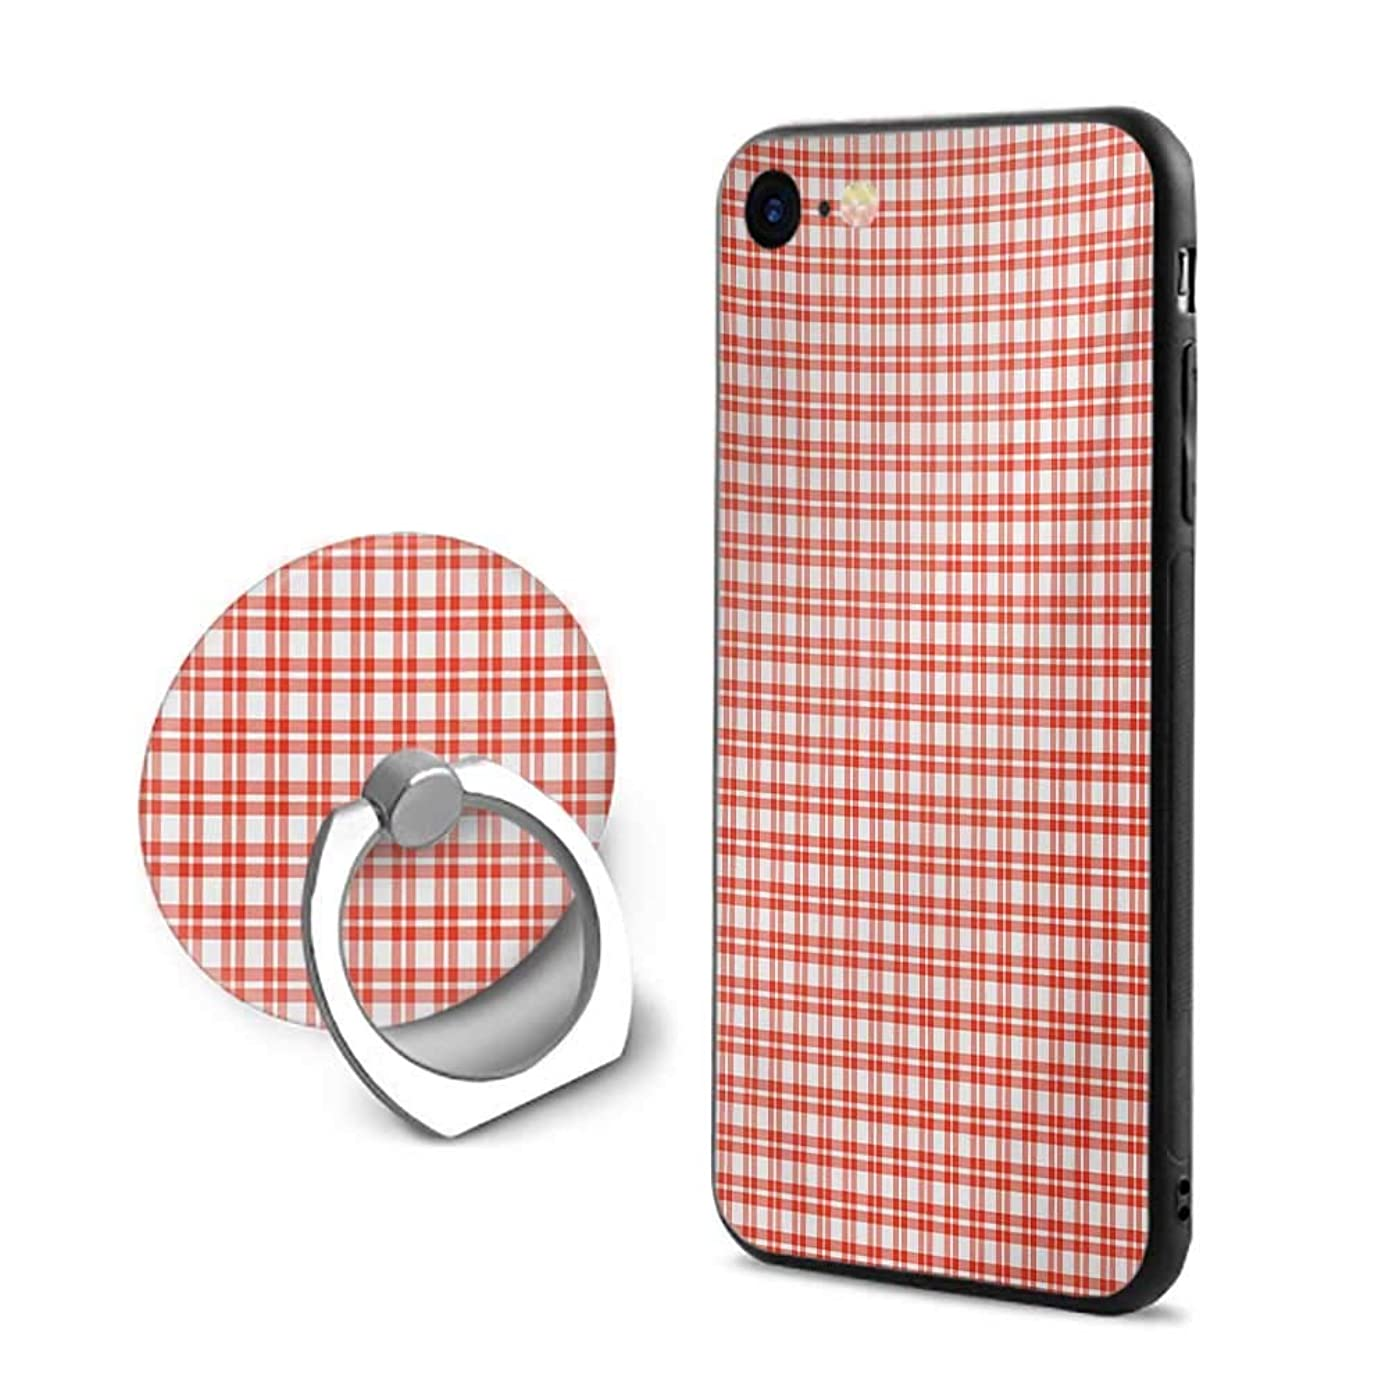 Plaid Tablecloth iPhone 7/iPhone 8 Cases,Colored and Checkered Country Picnic Pattern Repeating Squares Stripes Modern Orange and White,Mobile Phone Shell Ring Bracket